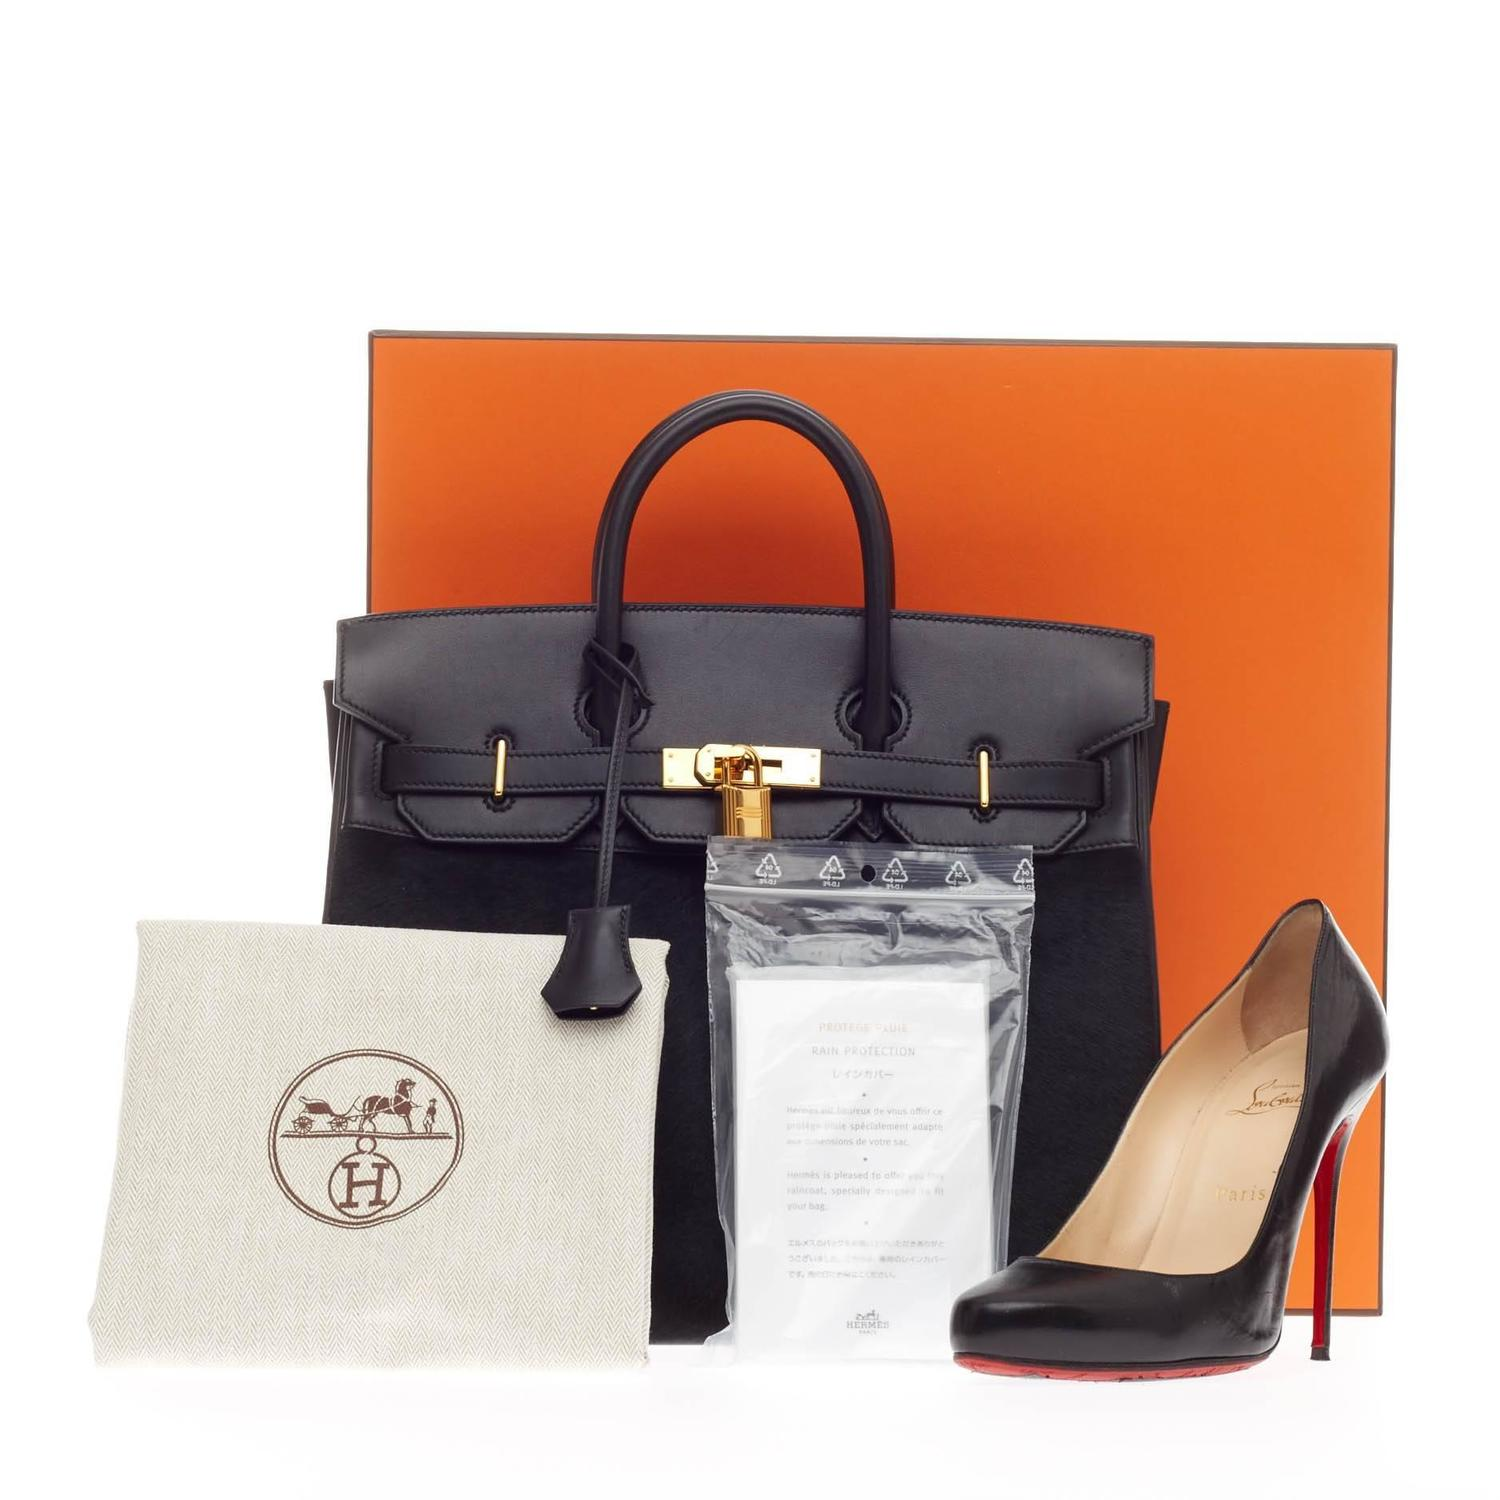 brighton knockoffs - Hermes Birkin Troika HAC Black Evercalf and Pony Hair with Gold ...